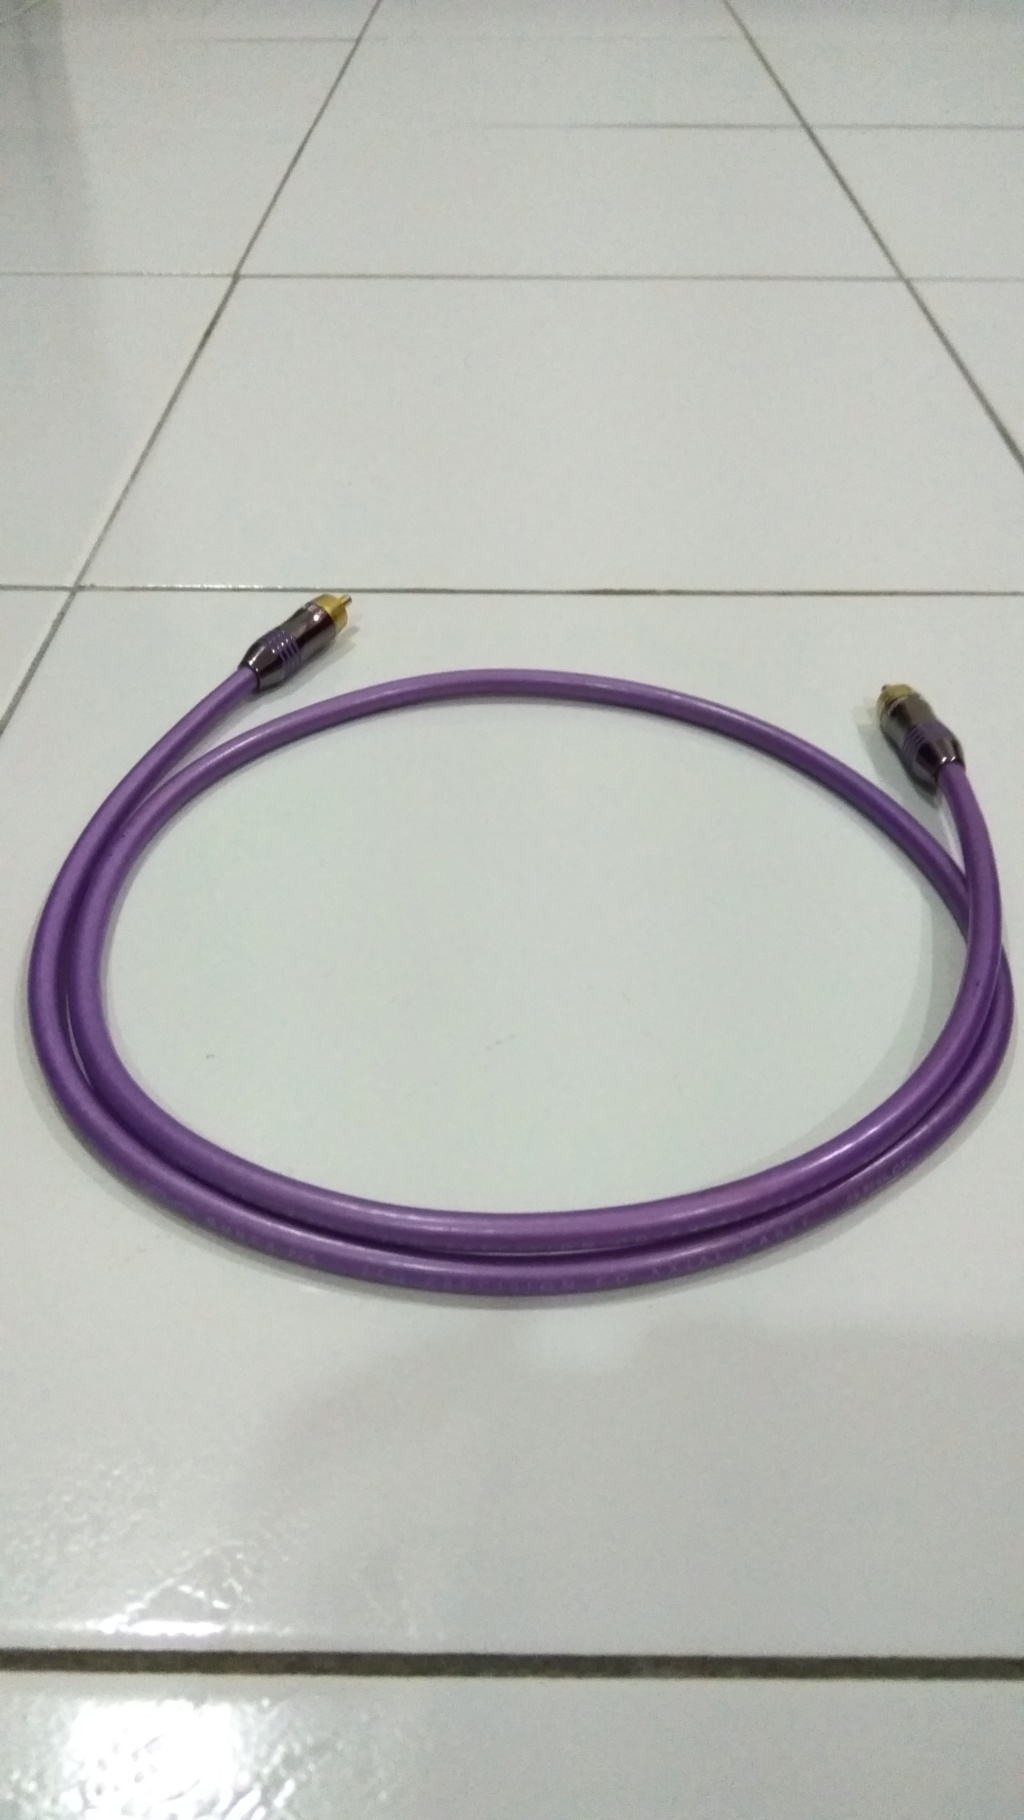 QED Qunex P75 Precision Co-Axial Cable Img_2010